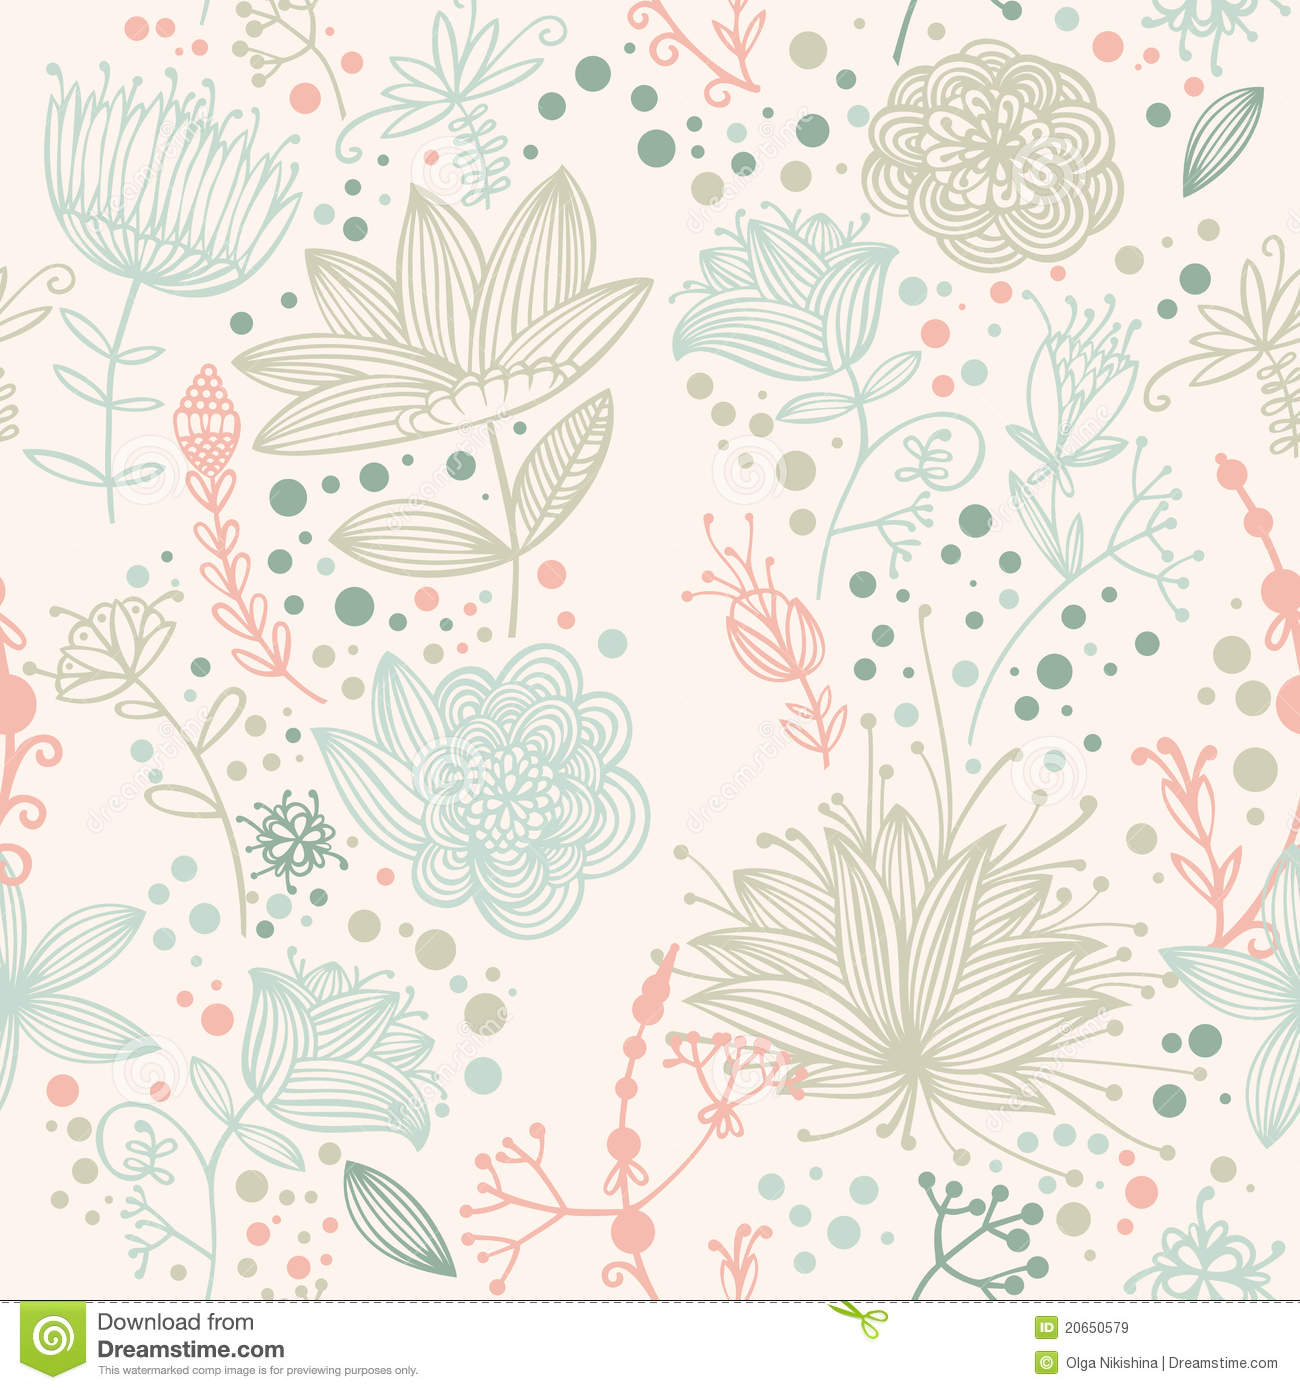 decorative computer paper 25,080 best free decorative paper borders free vector download for commercial use in ai, eps, cdr, svg vector illustration graphic art design format free decorative.